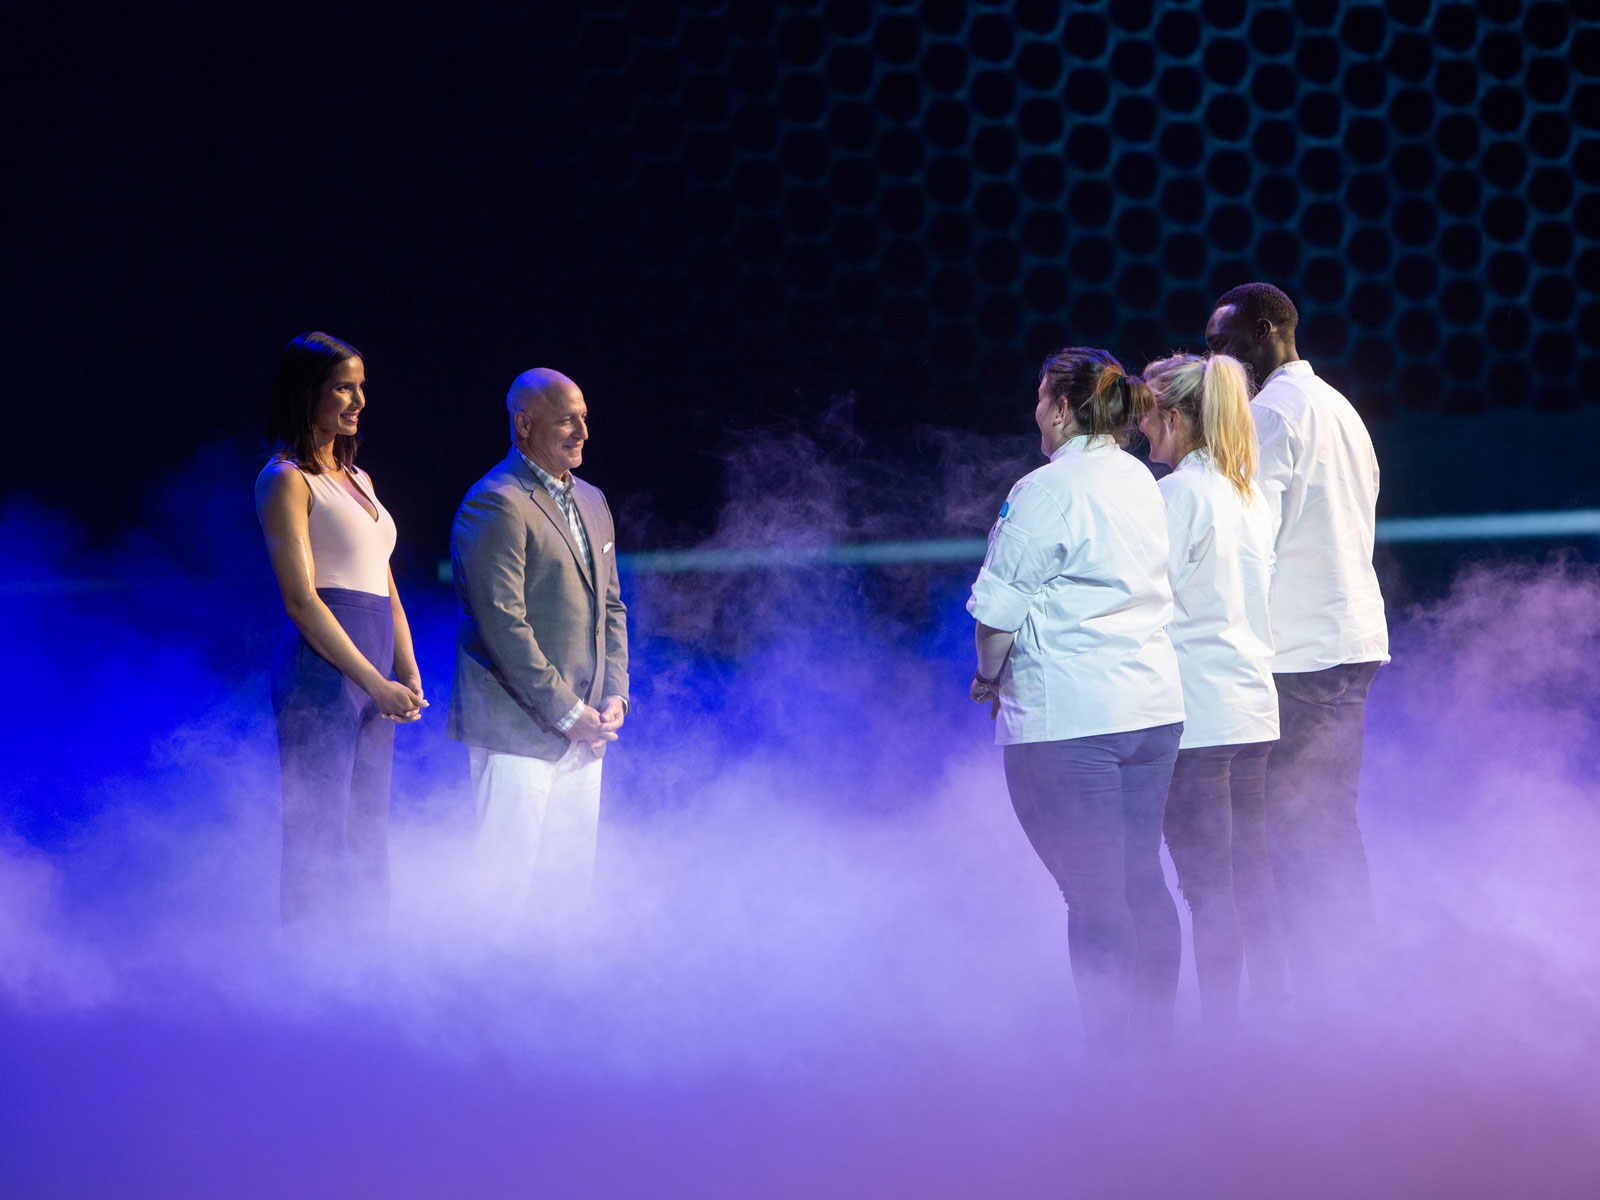 top-chef-s16e15-finale-embed1-FT-BLOG0319.jpg